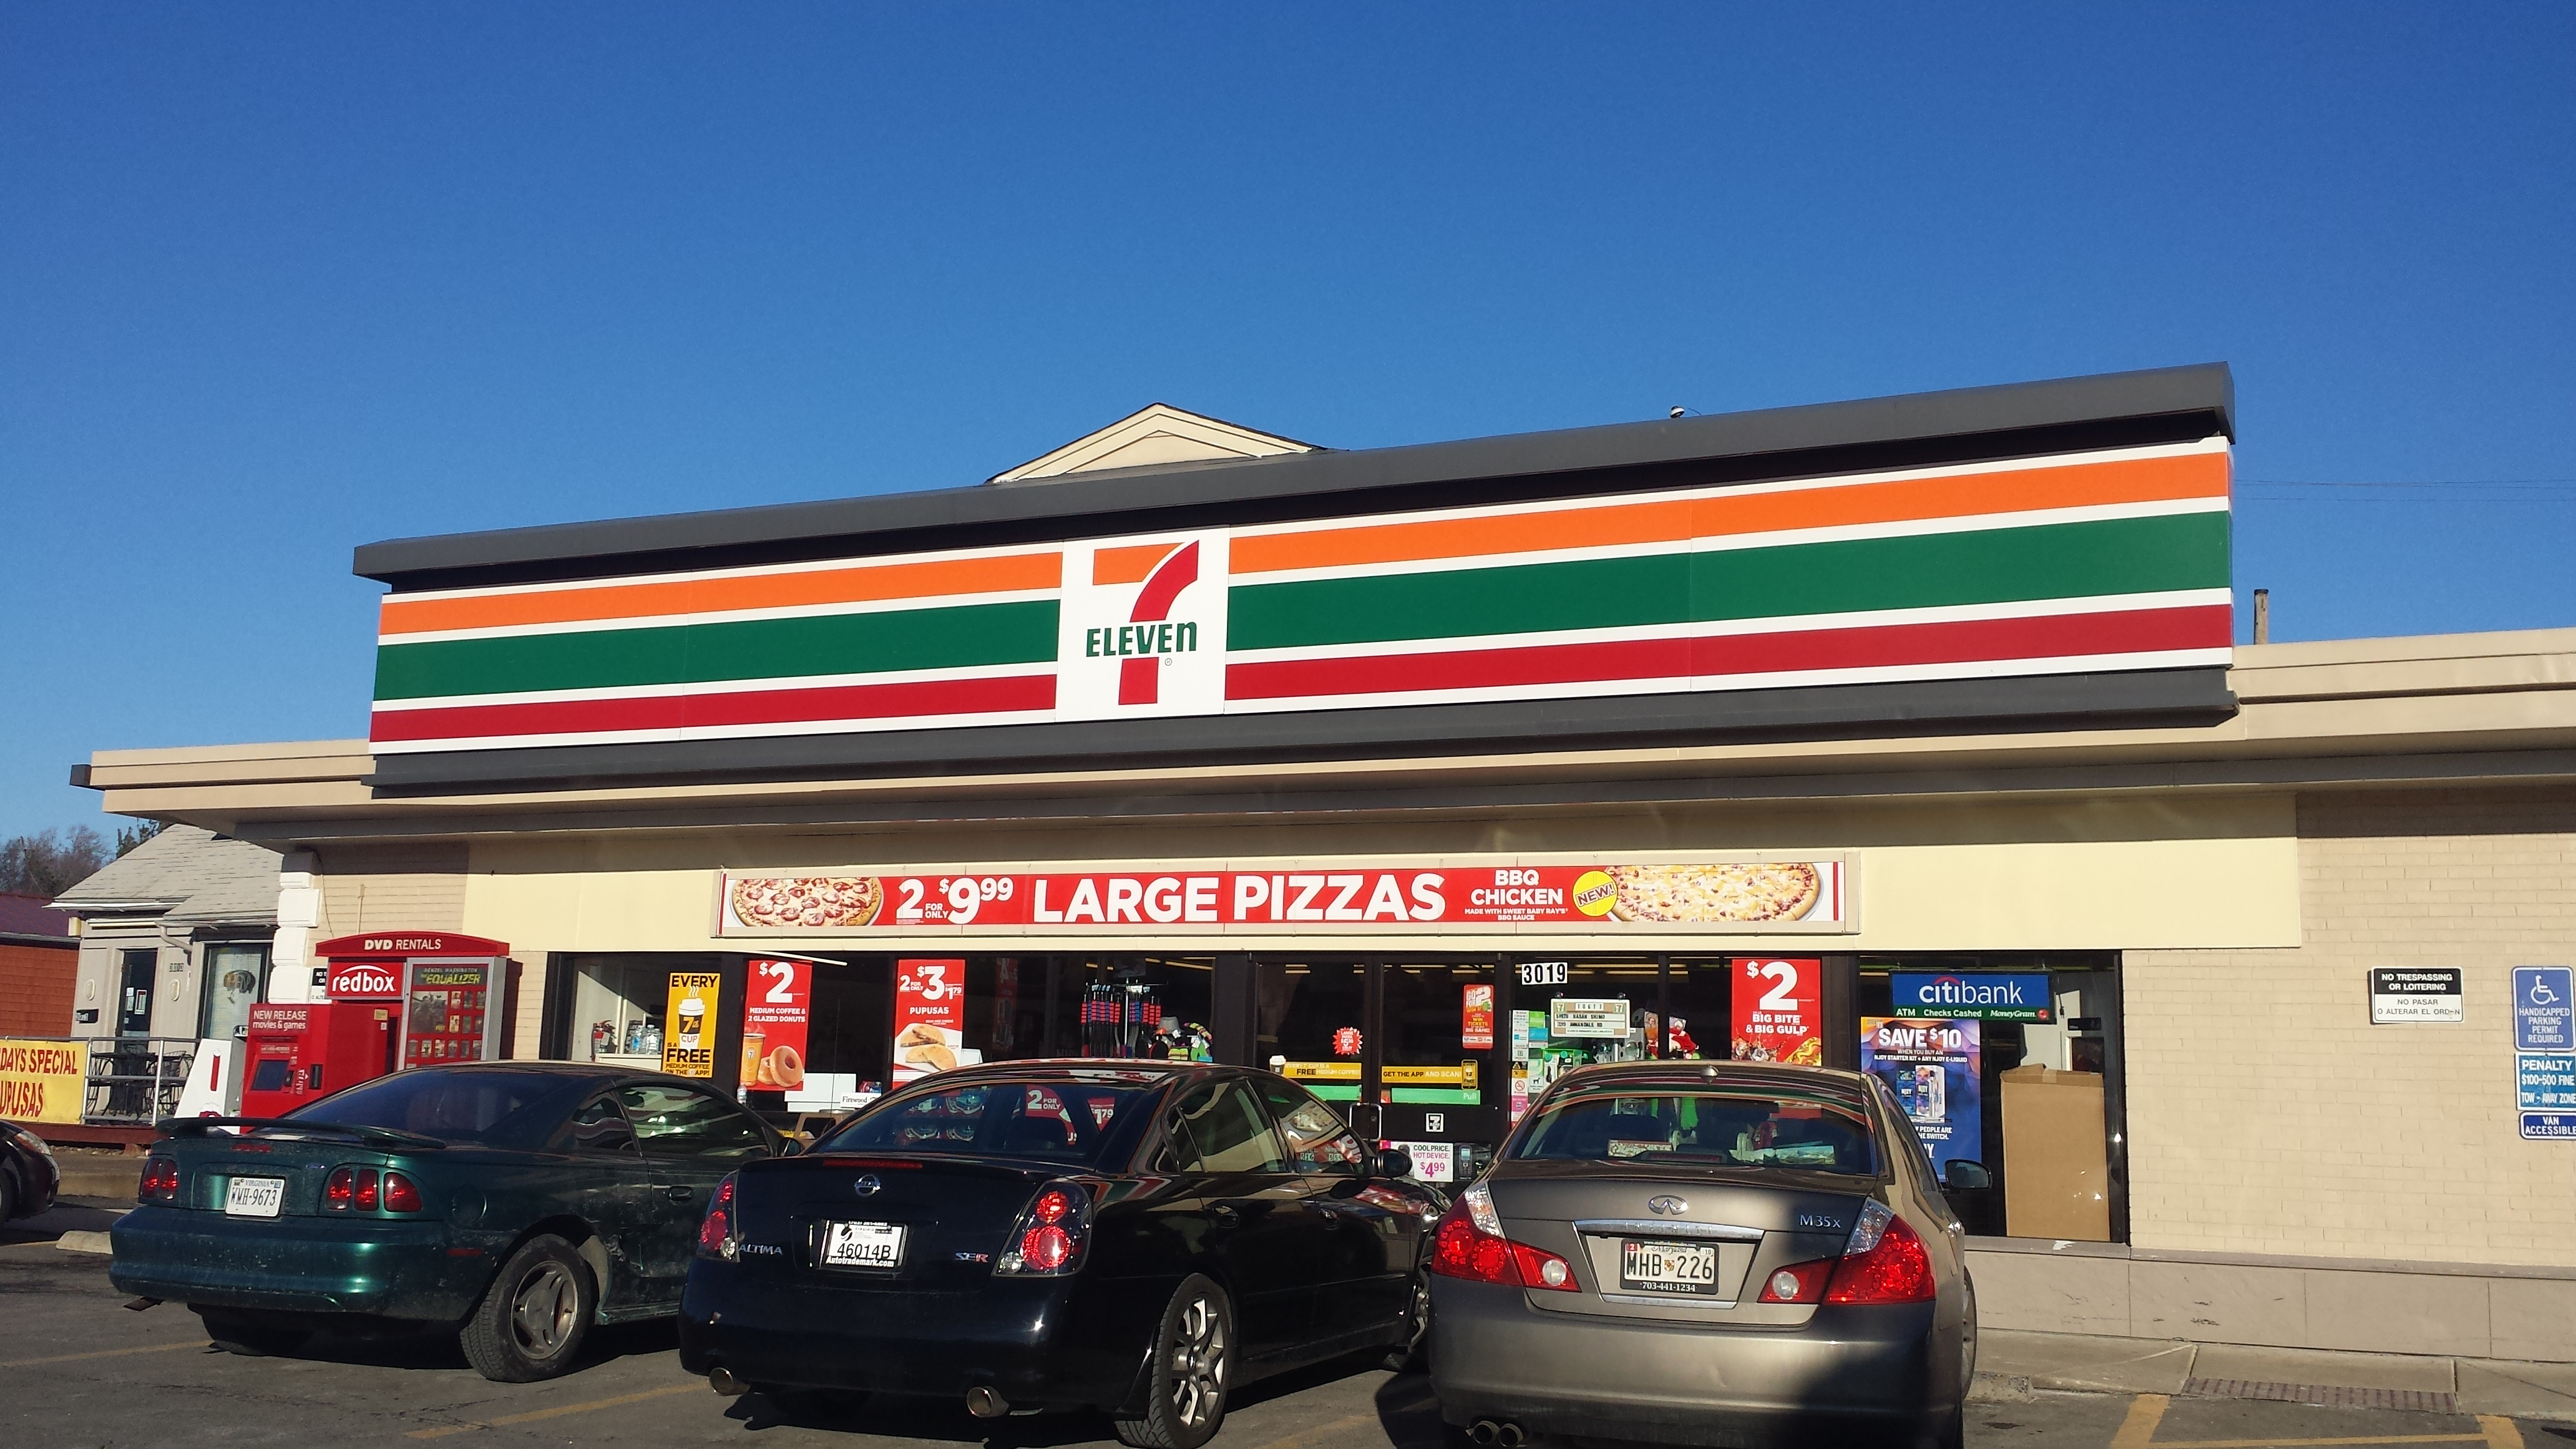 7-11 Woodbridge VA Sold at 6.5 Cap